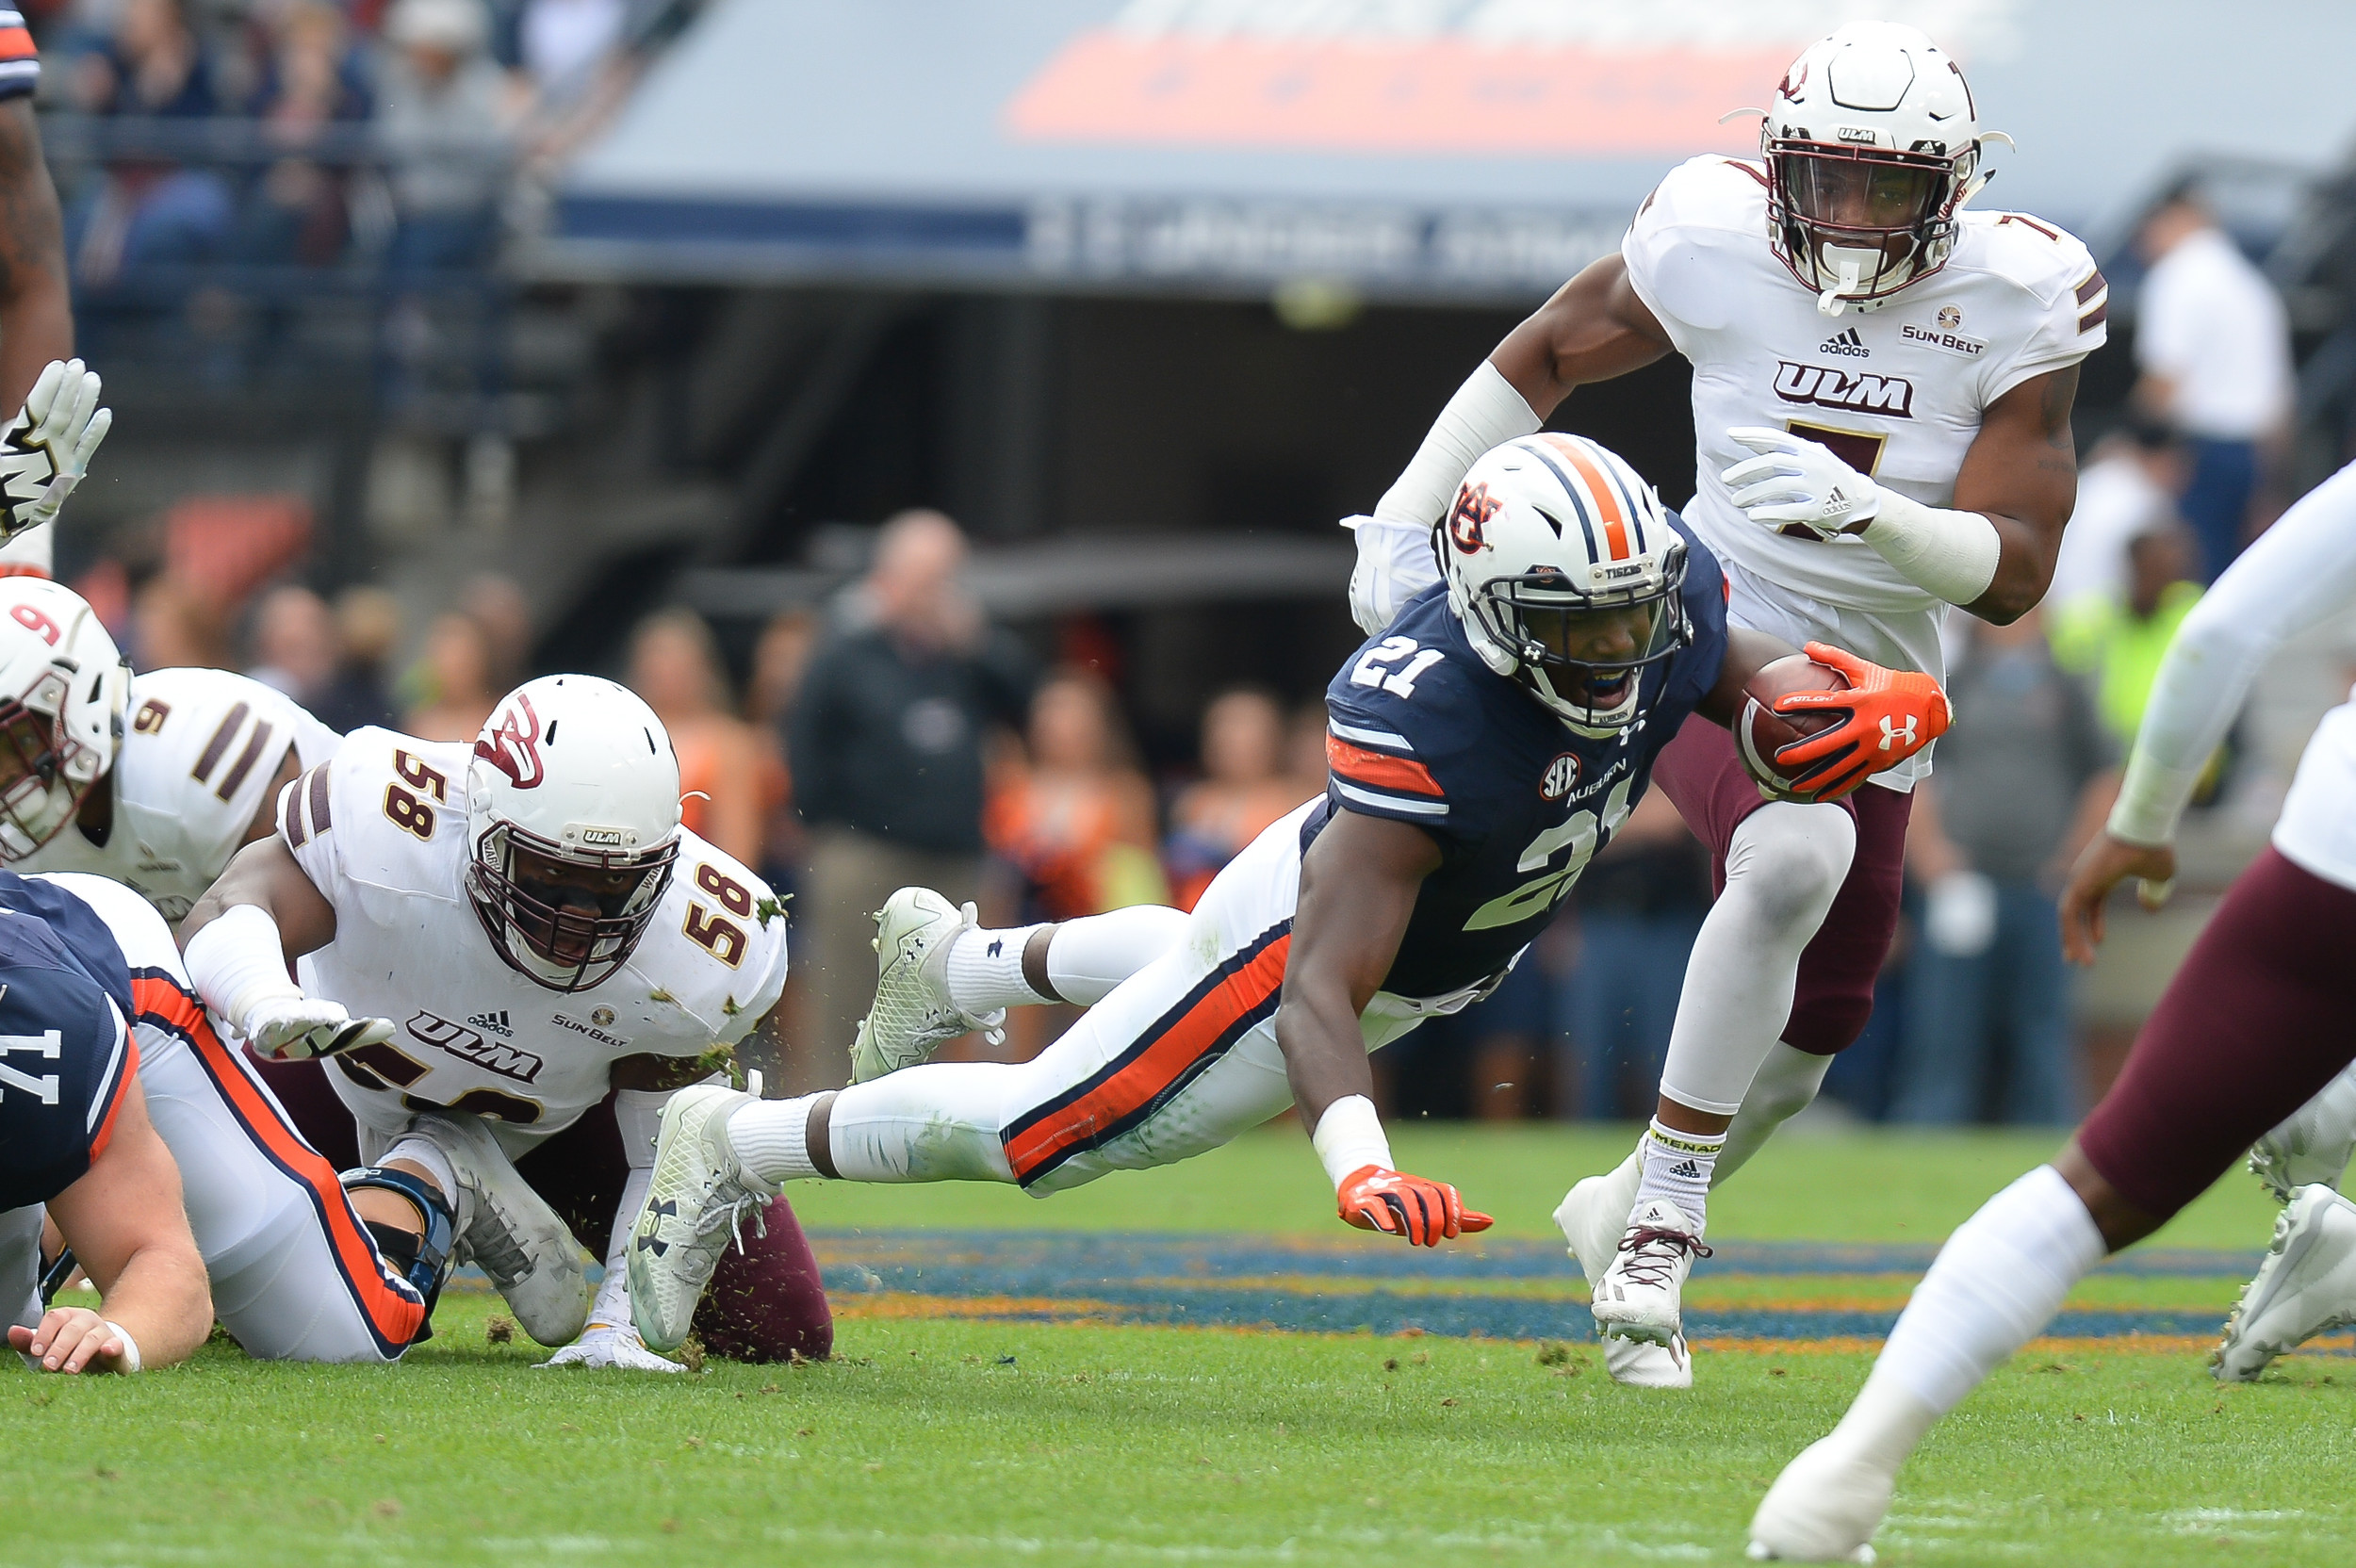 Auburn Tigers running back Kerryon Johnson (21) dives for yardage during the first half of Saturday's game, at Jordan-Hare Stadium.